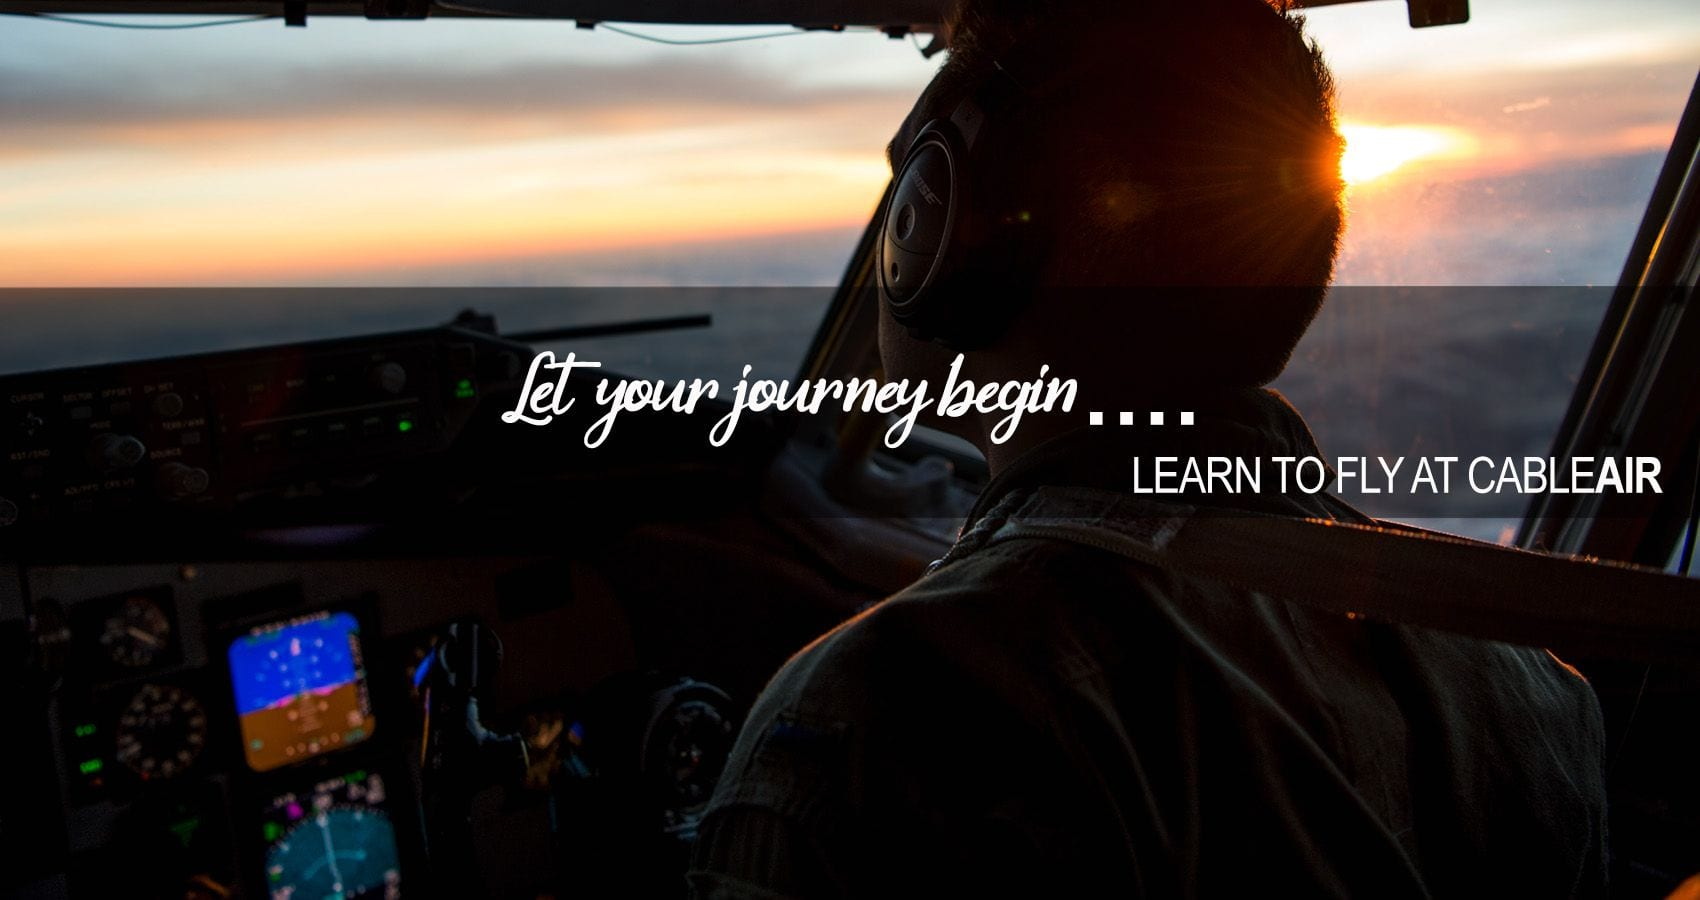 Learn to fly at CableAir